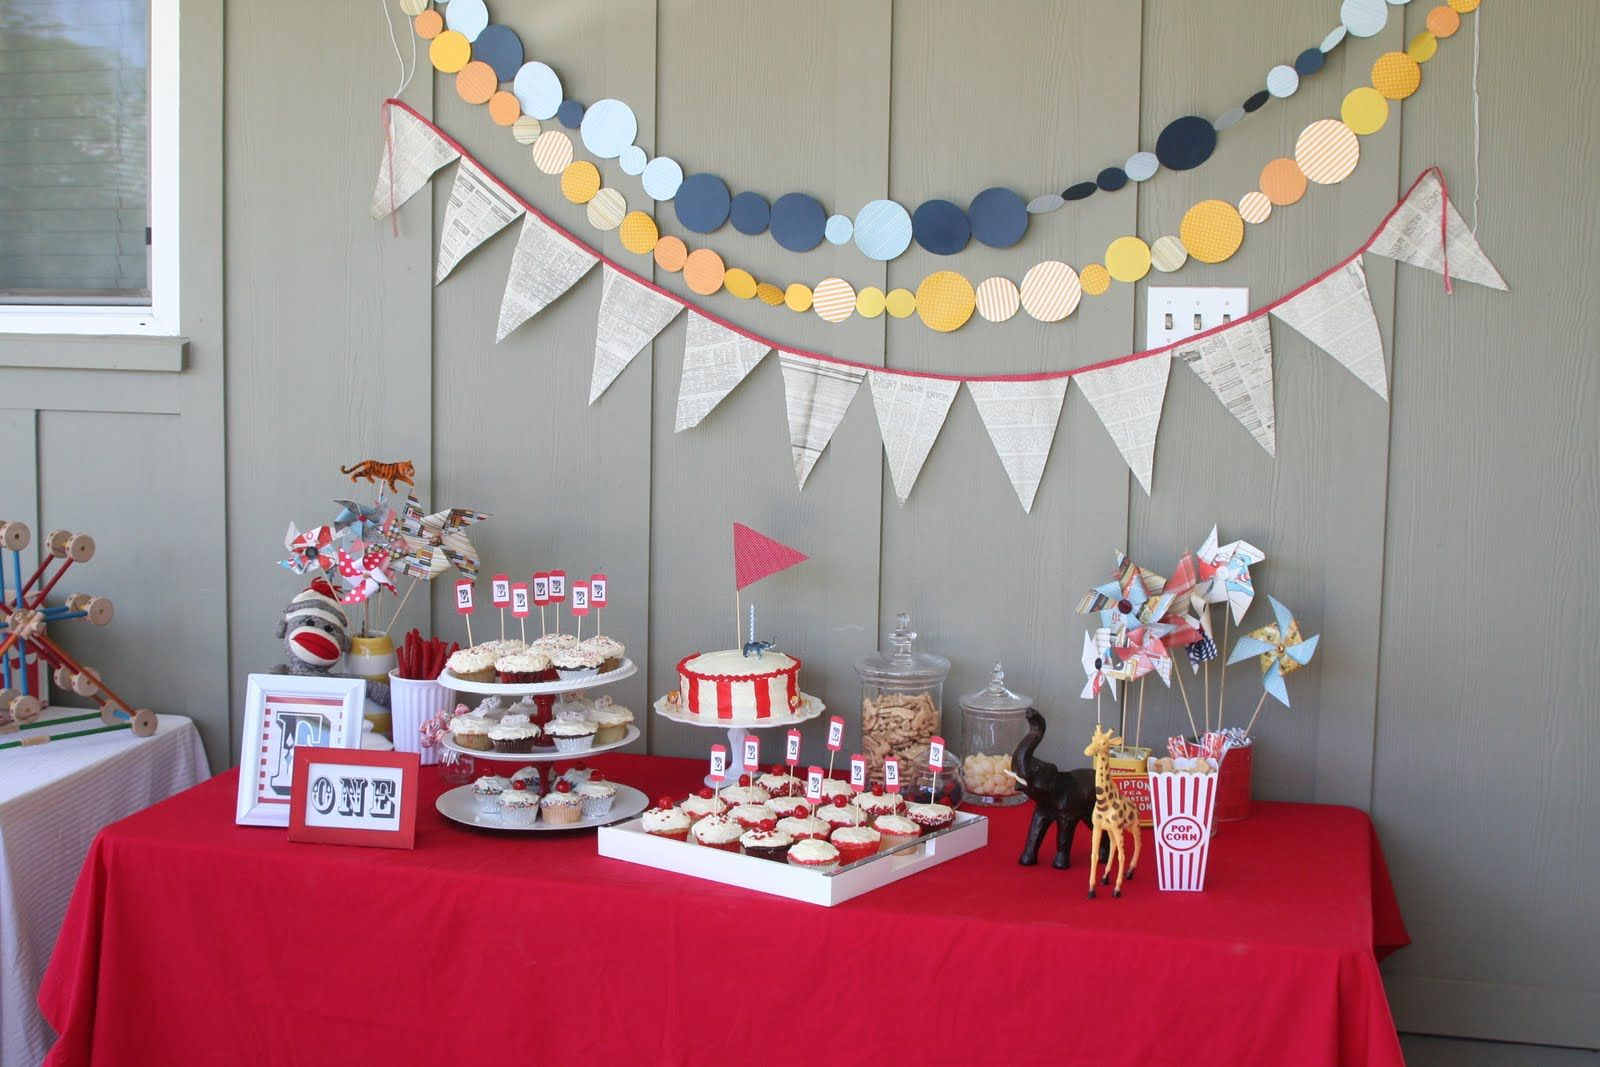 Decorating For A Party birthday party decoration | decoration, birthdays and circus theme